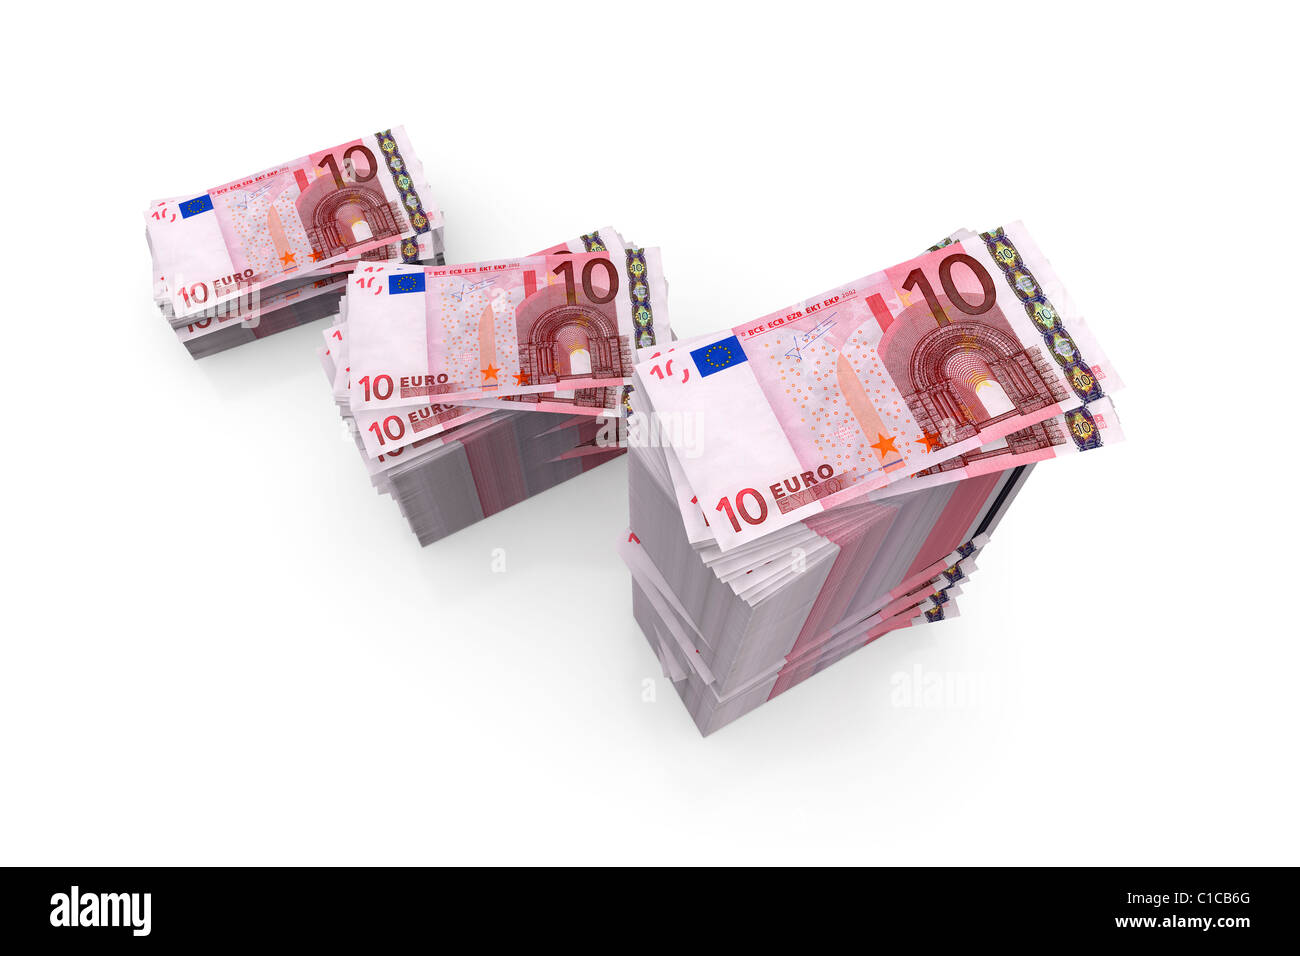 Piles of 10 Euro banknotes currency, stack on white background - Stock Image